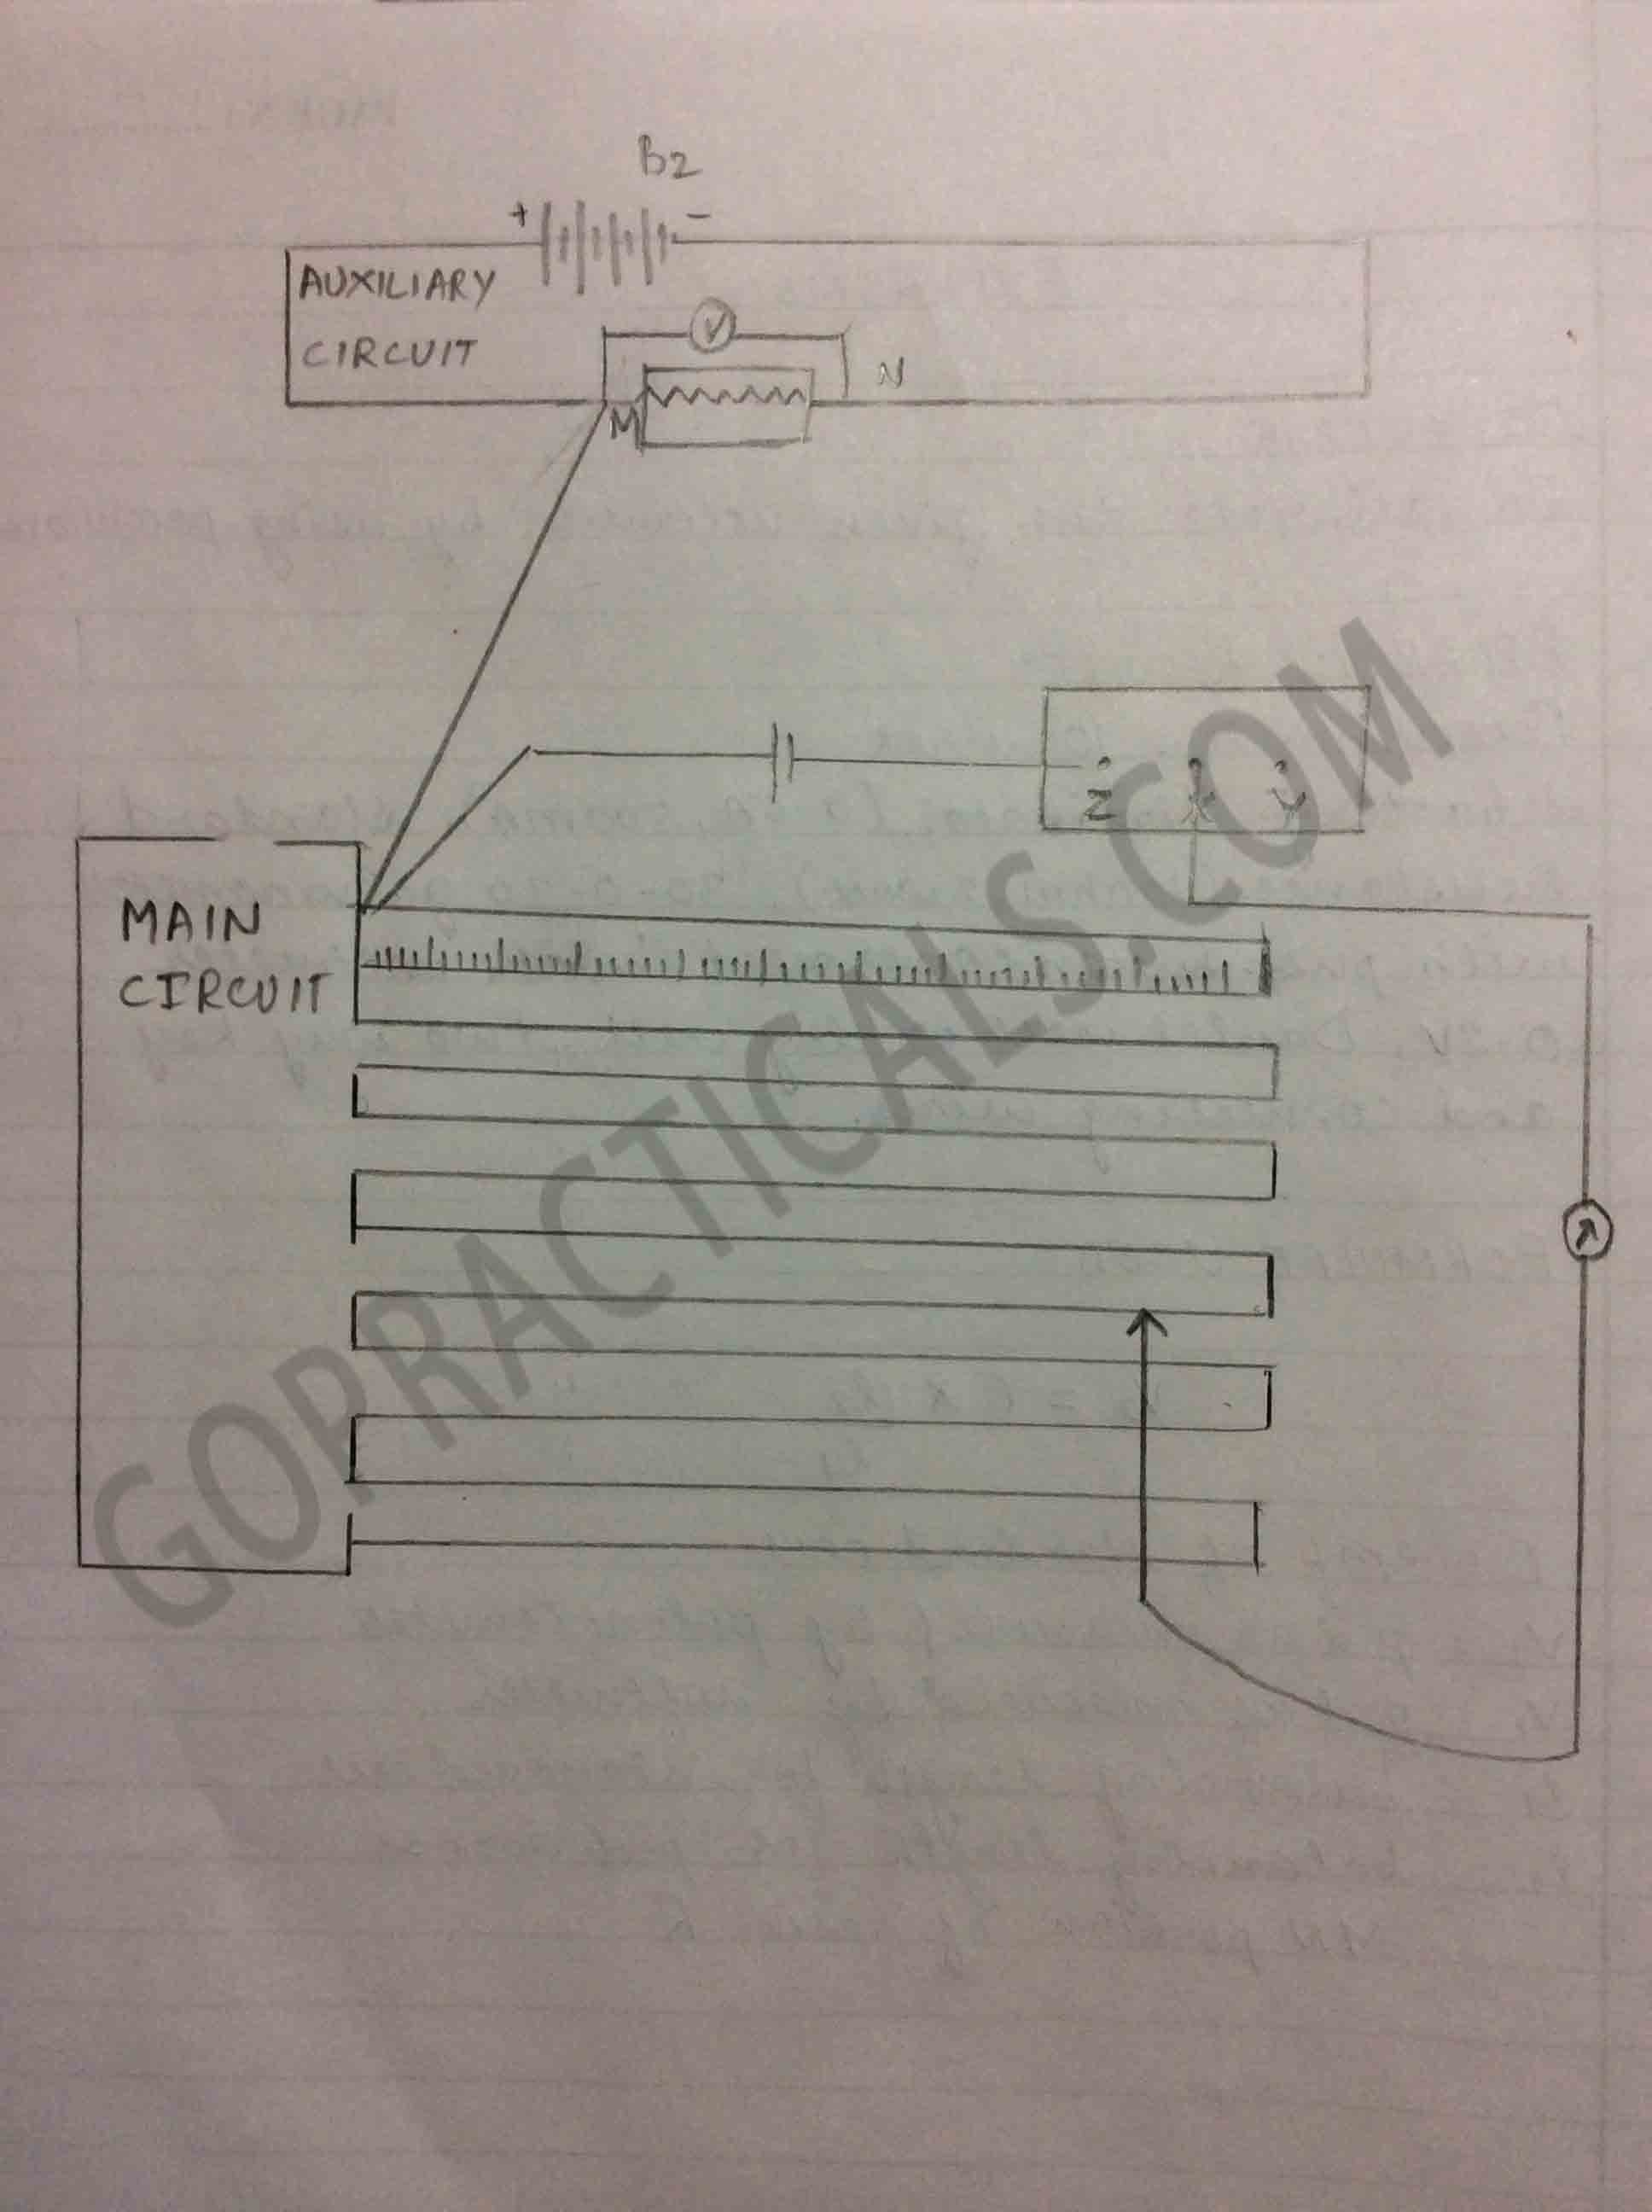 To Calibrate Voltmeter With Potentiometer Physics Practical Circuit Diagram Calibration Of 2